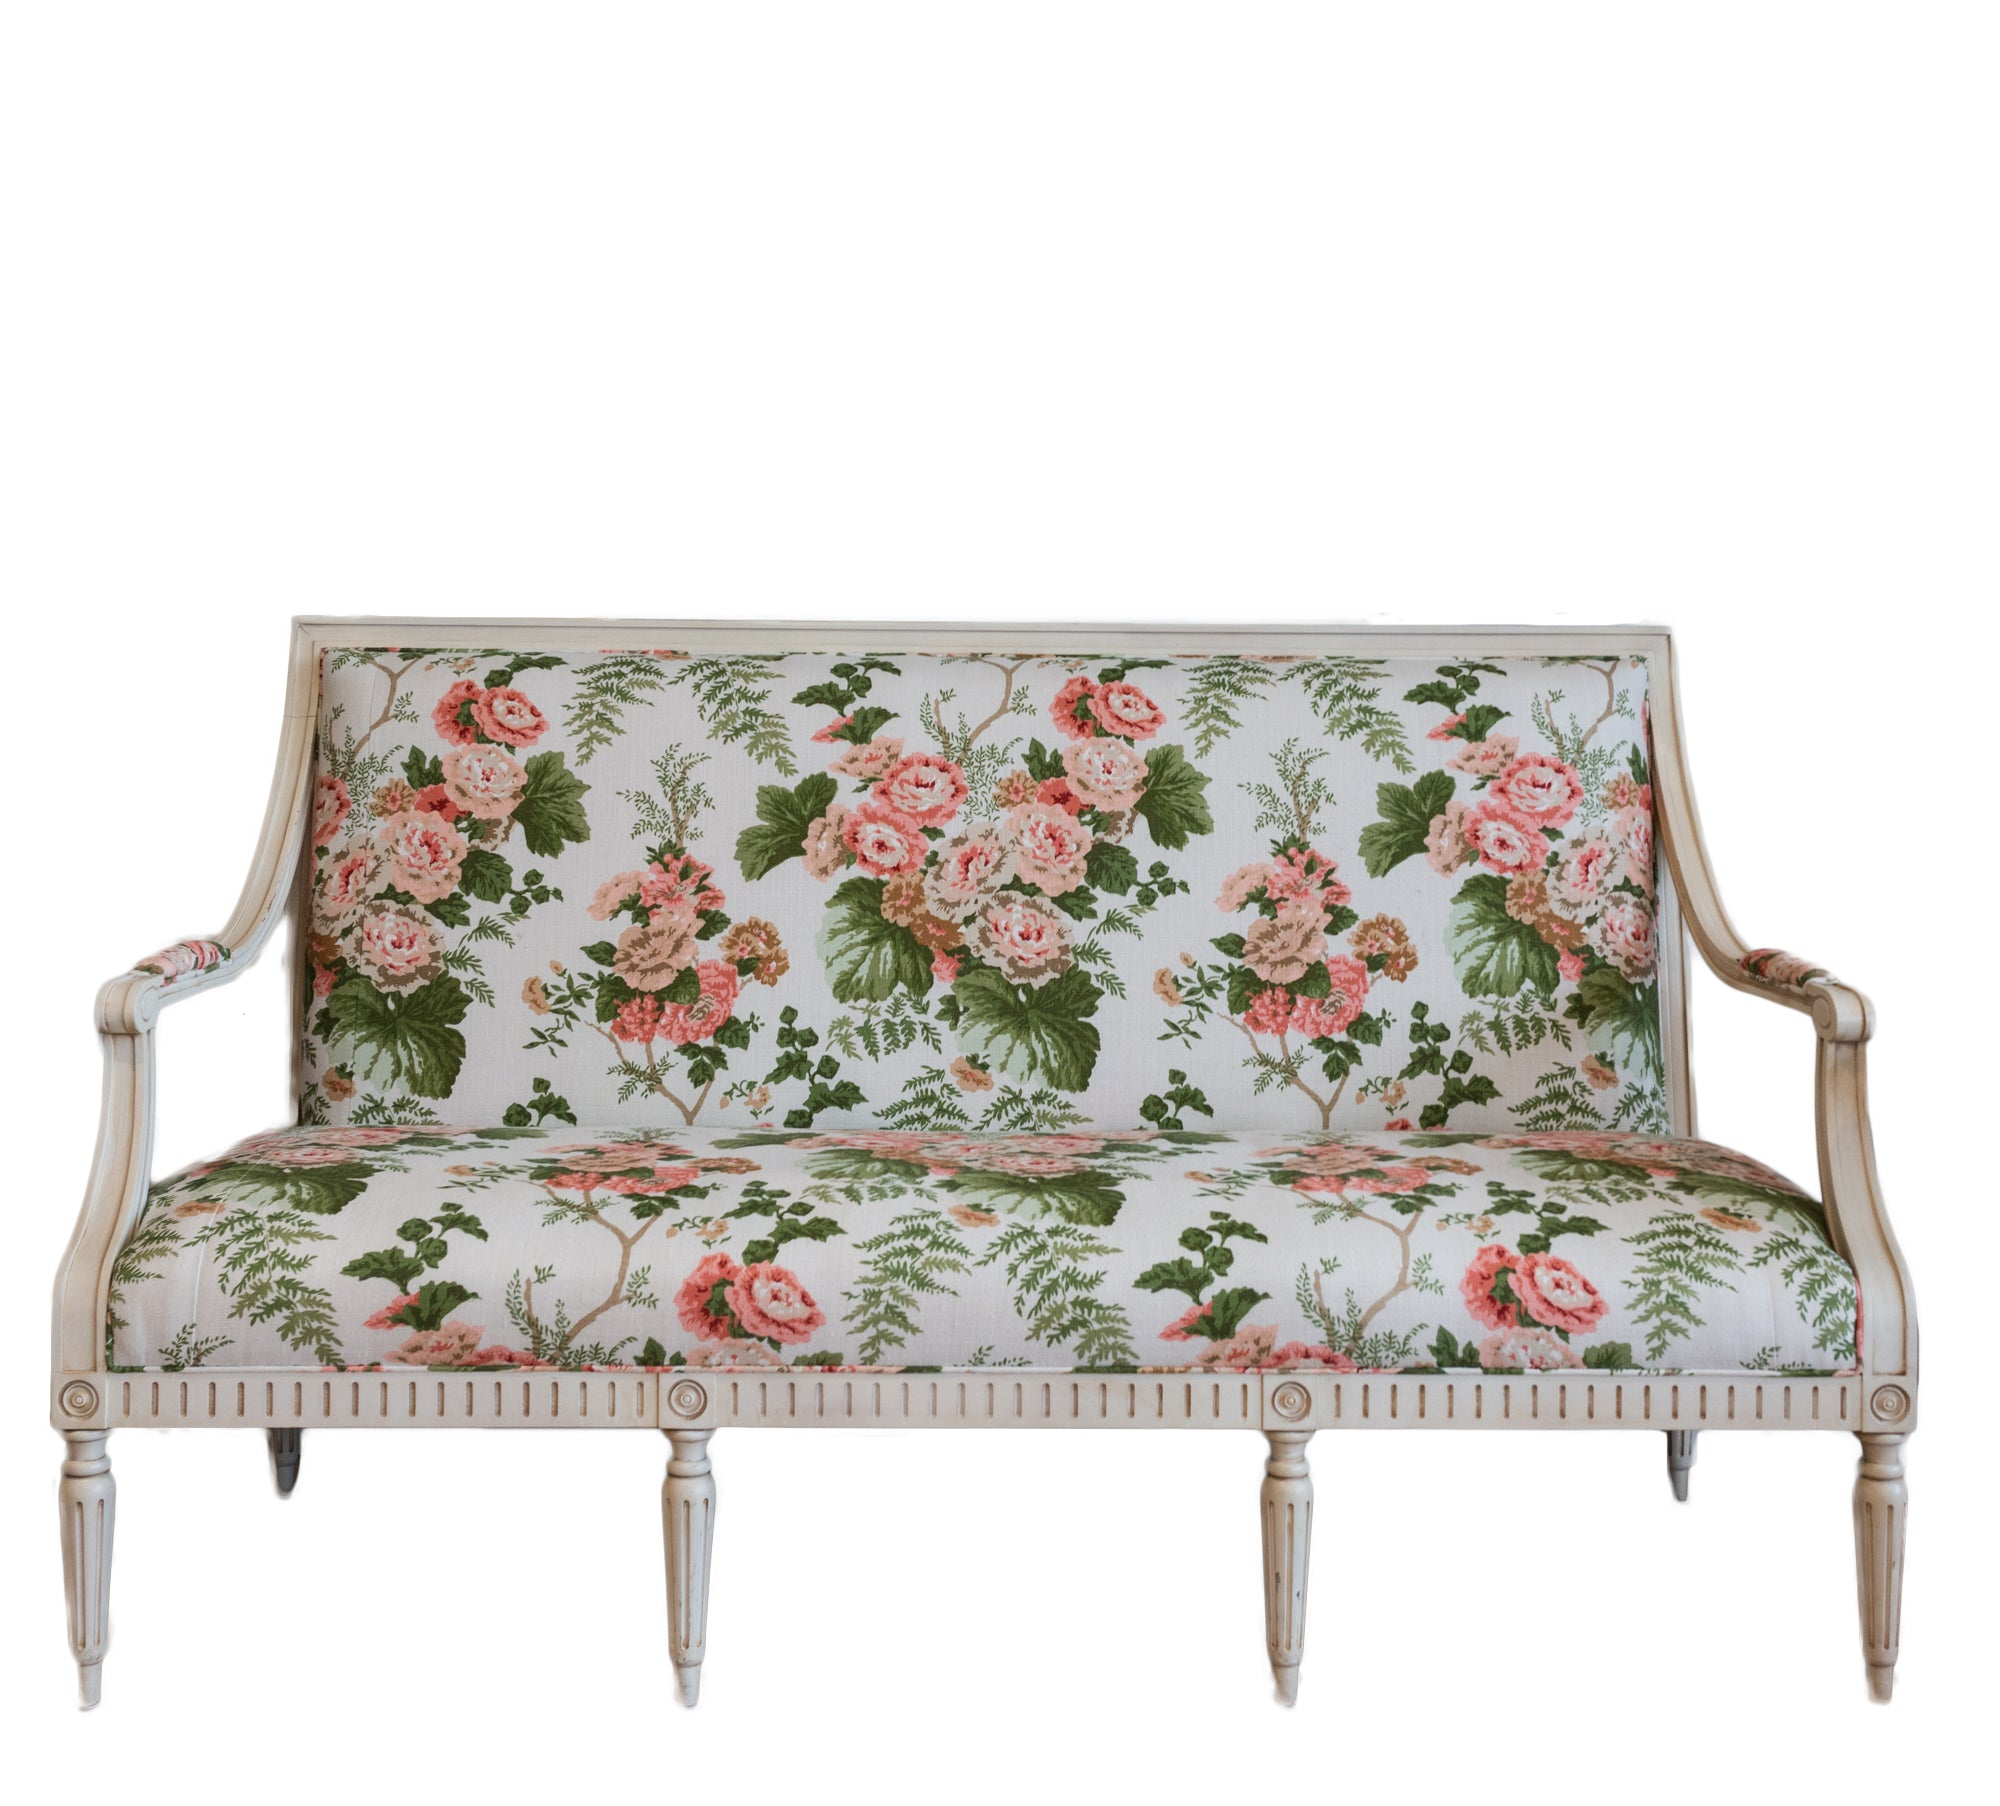 Floral Settee - Amy Berry Home